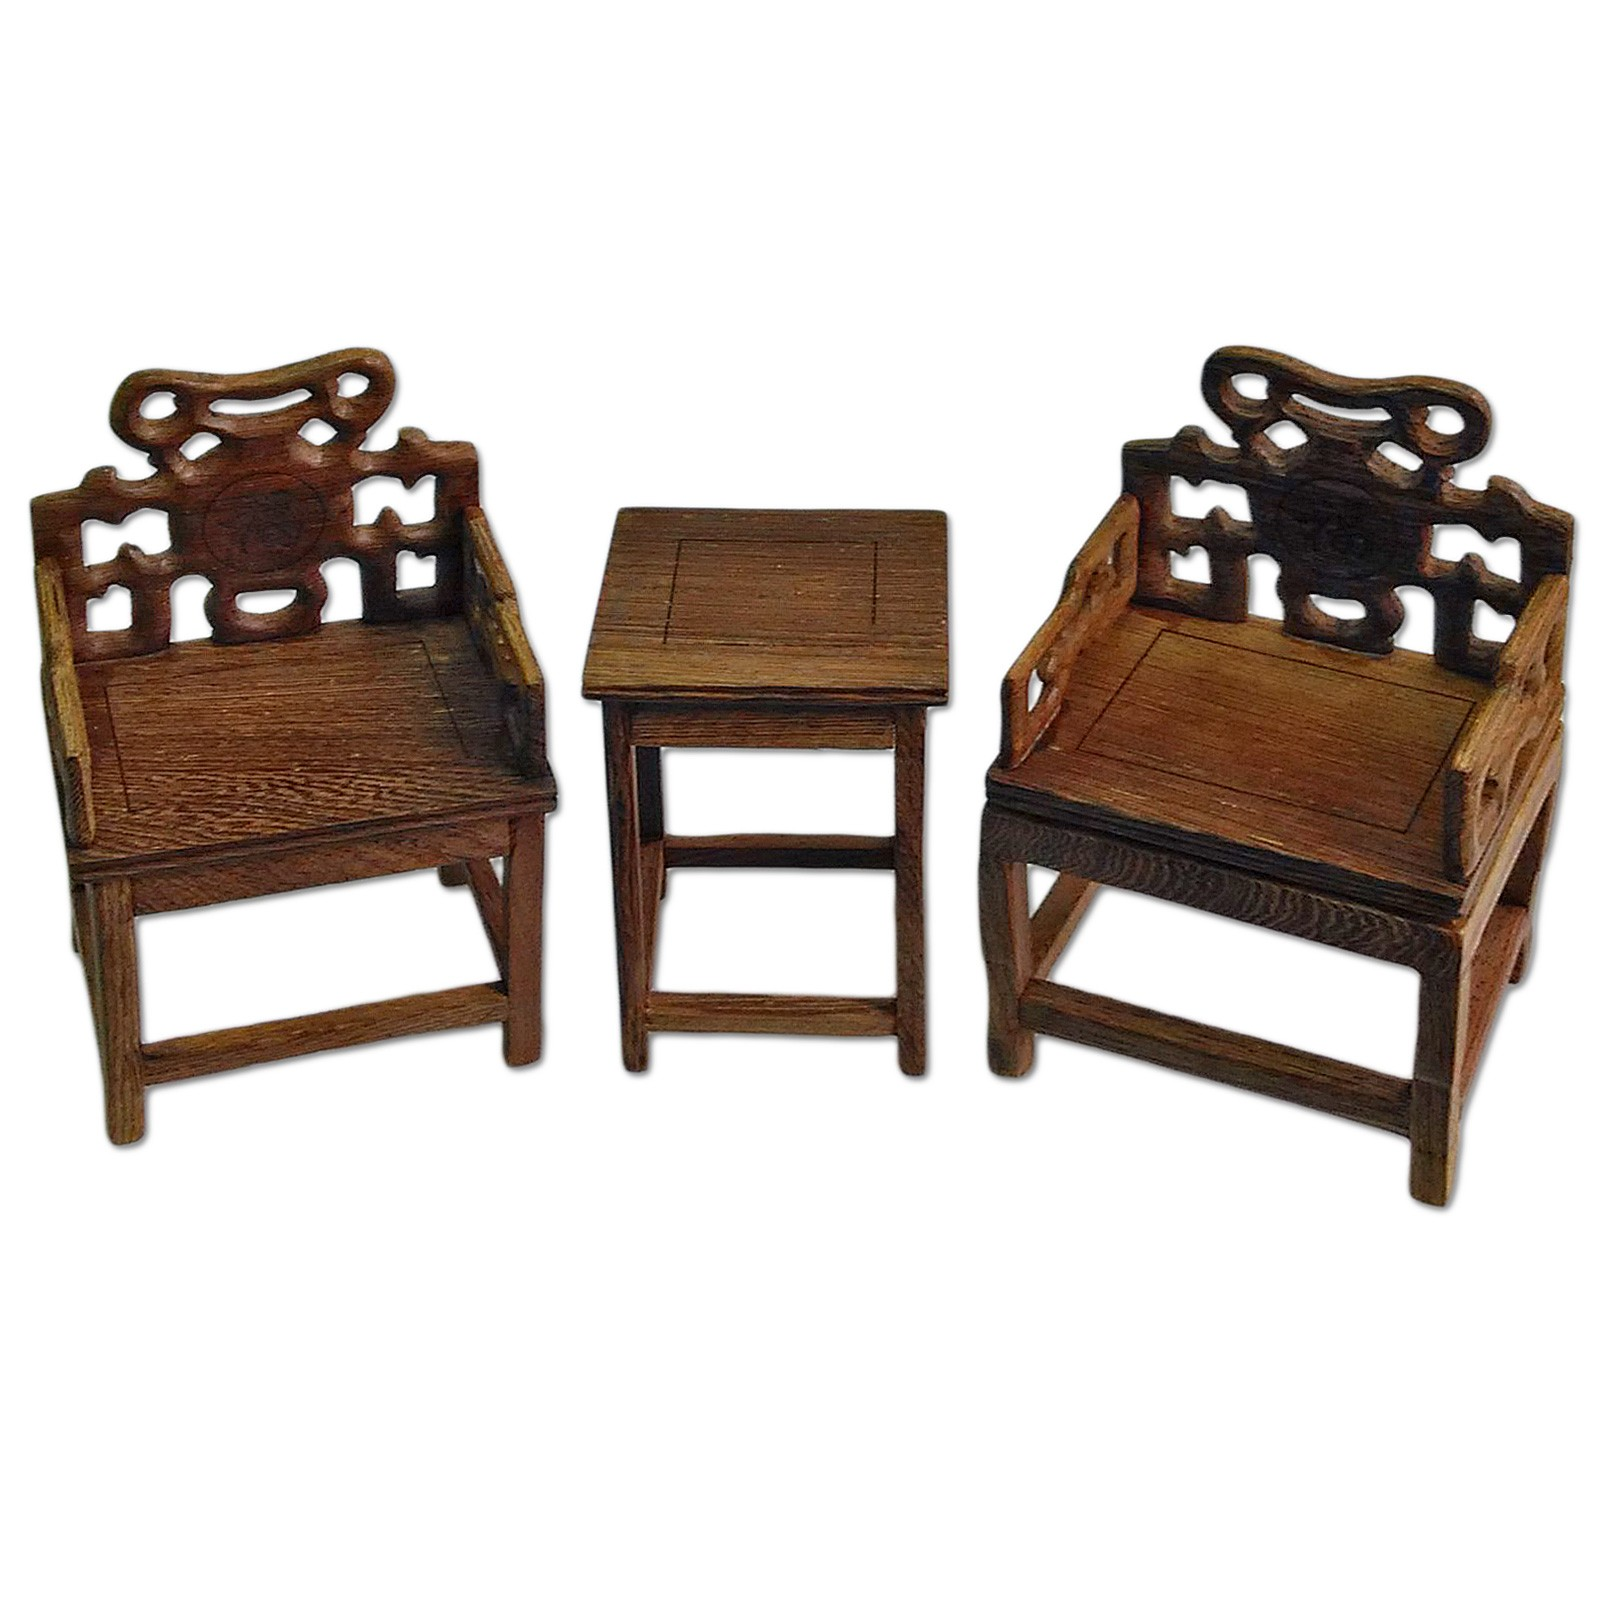 - Set Raw Wenge Wood Chinese Chair Coffee Table 1:6 Scale Doll's